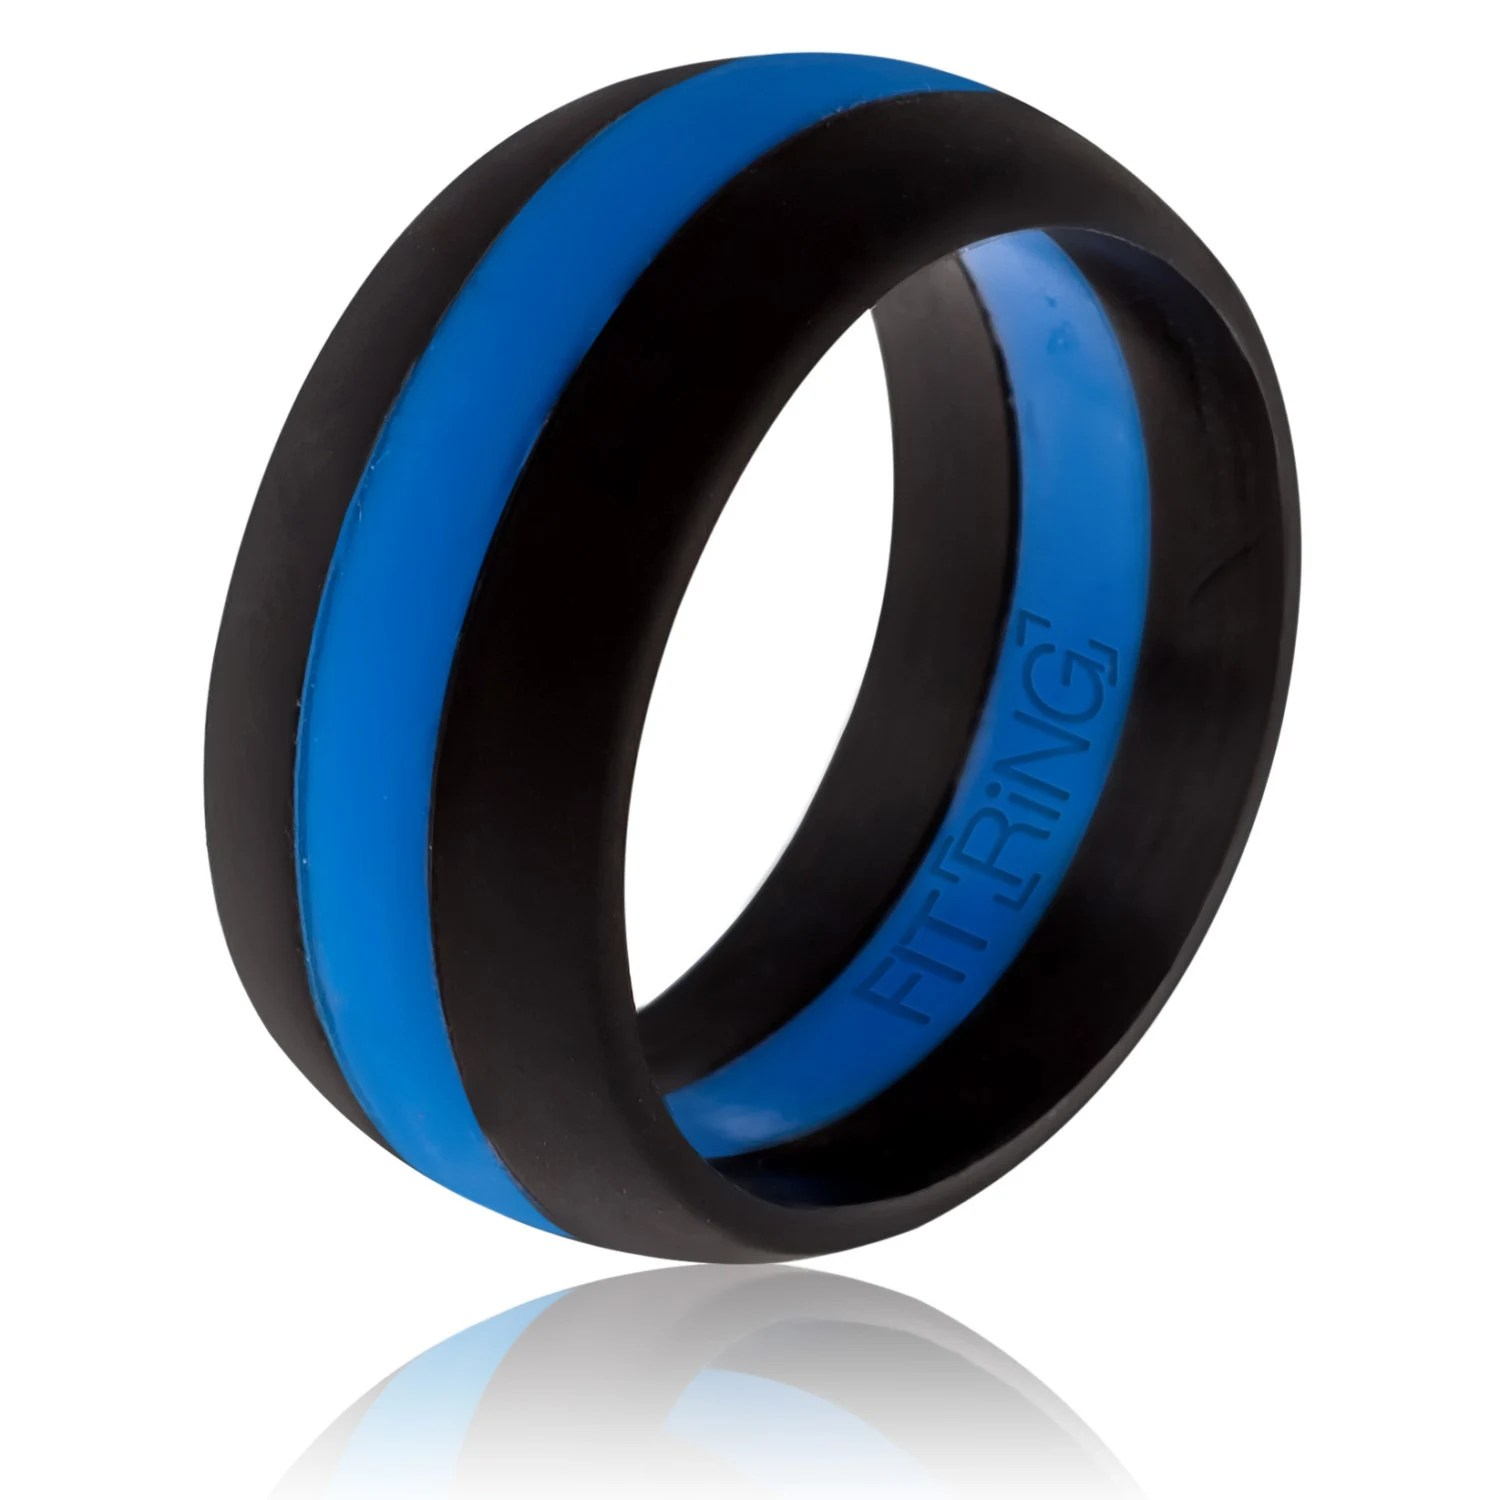 fit ring powered by arthletic mens mens silicone wedding band Fit Ring Men s Silicone Wedding Ring Thin Blue Line Powered by Arthletic Law Enforcement Silicone Wedding Band Police Safe Rings